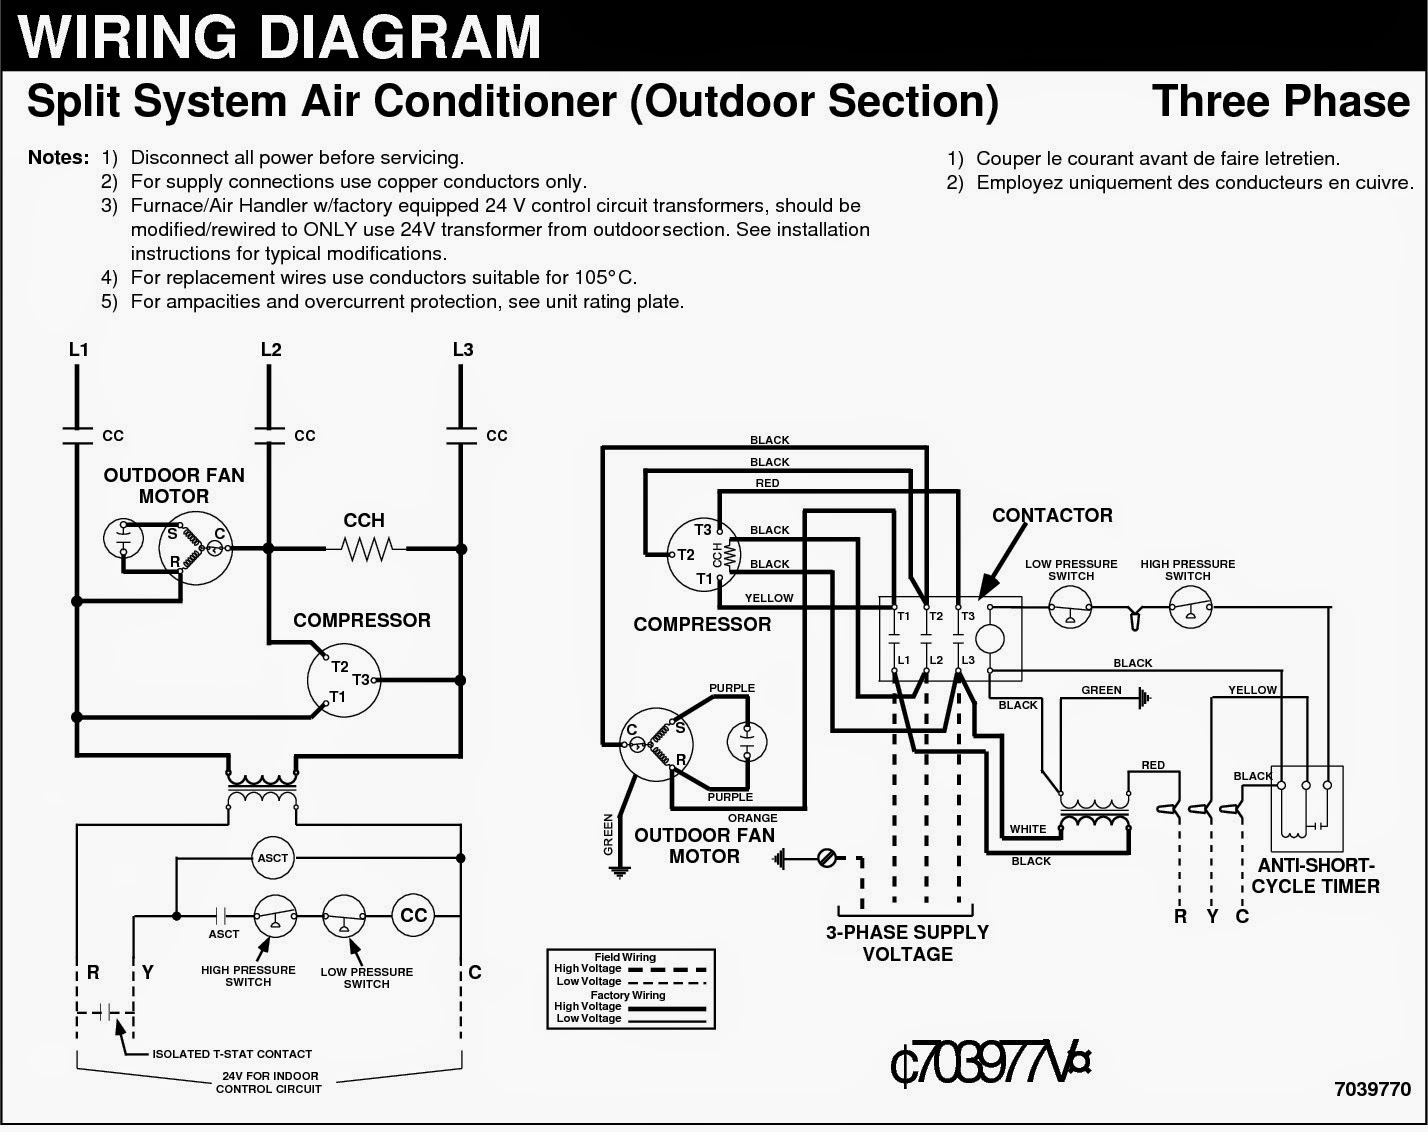 3+phase ac compressor wiring diagram bitzer compressor wiring diagram a c compressor wiring diagram at edmiracle.co